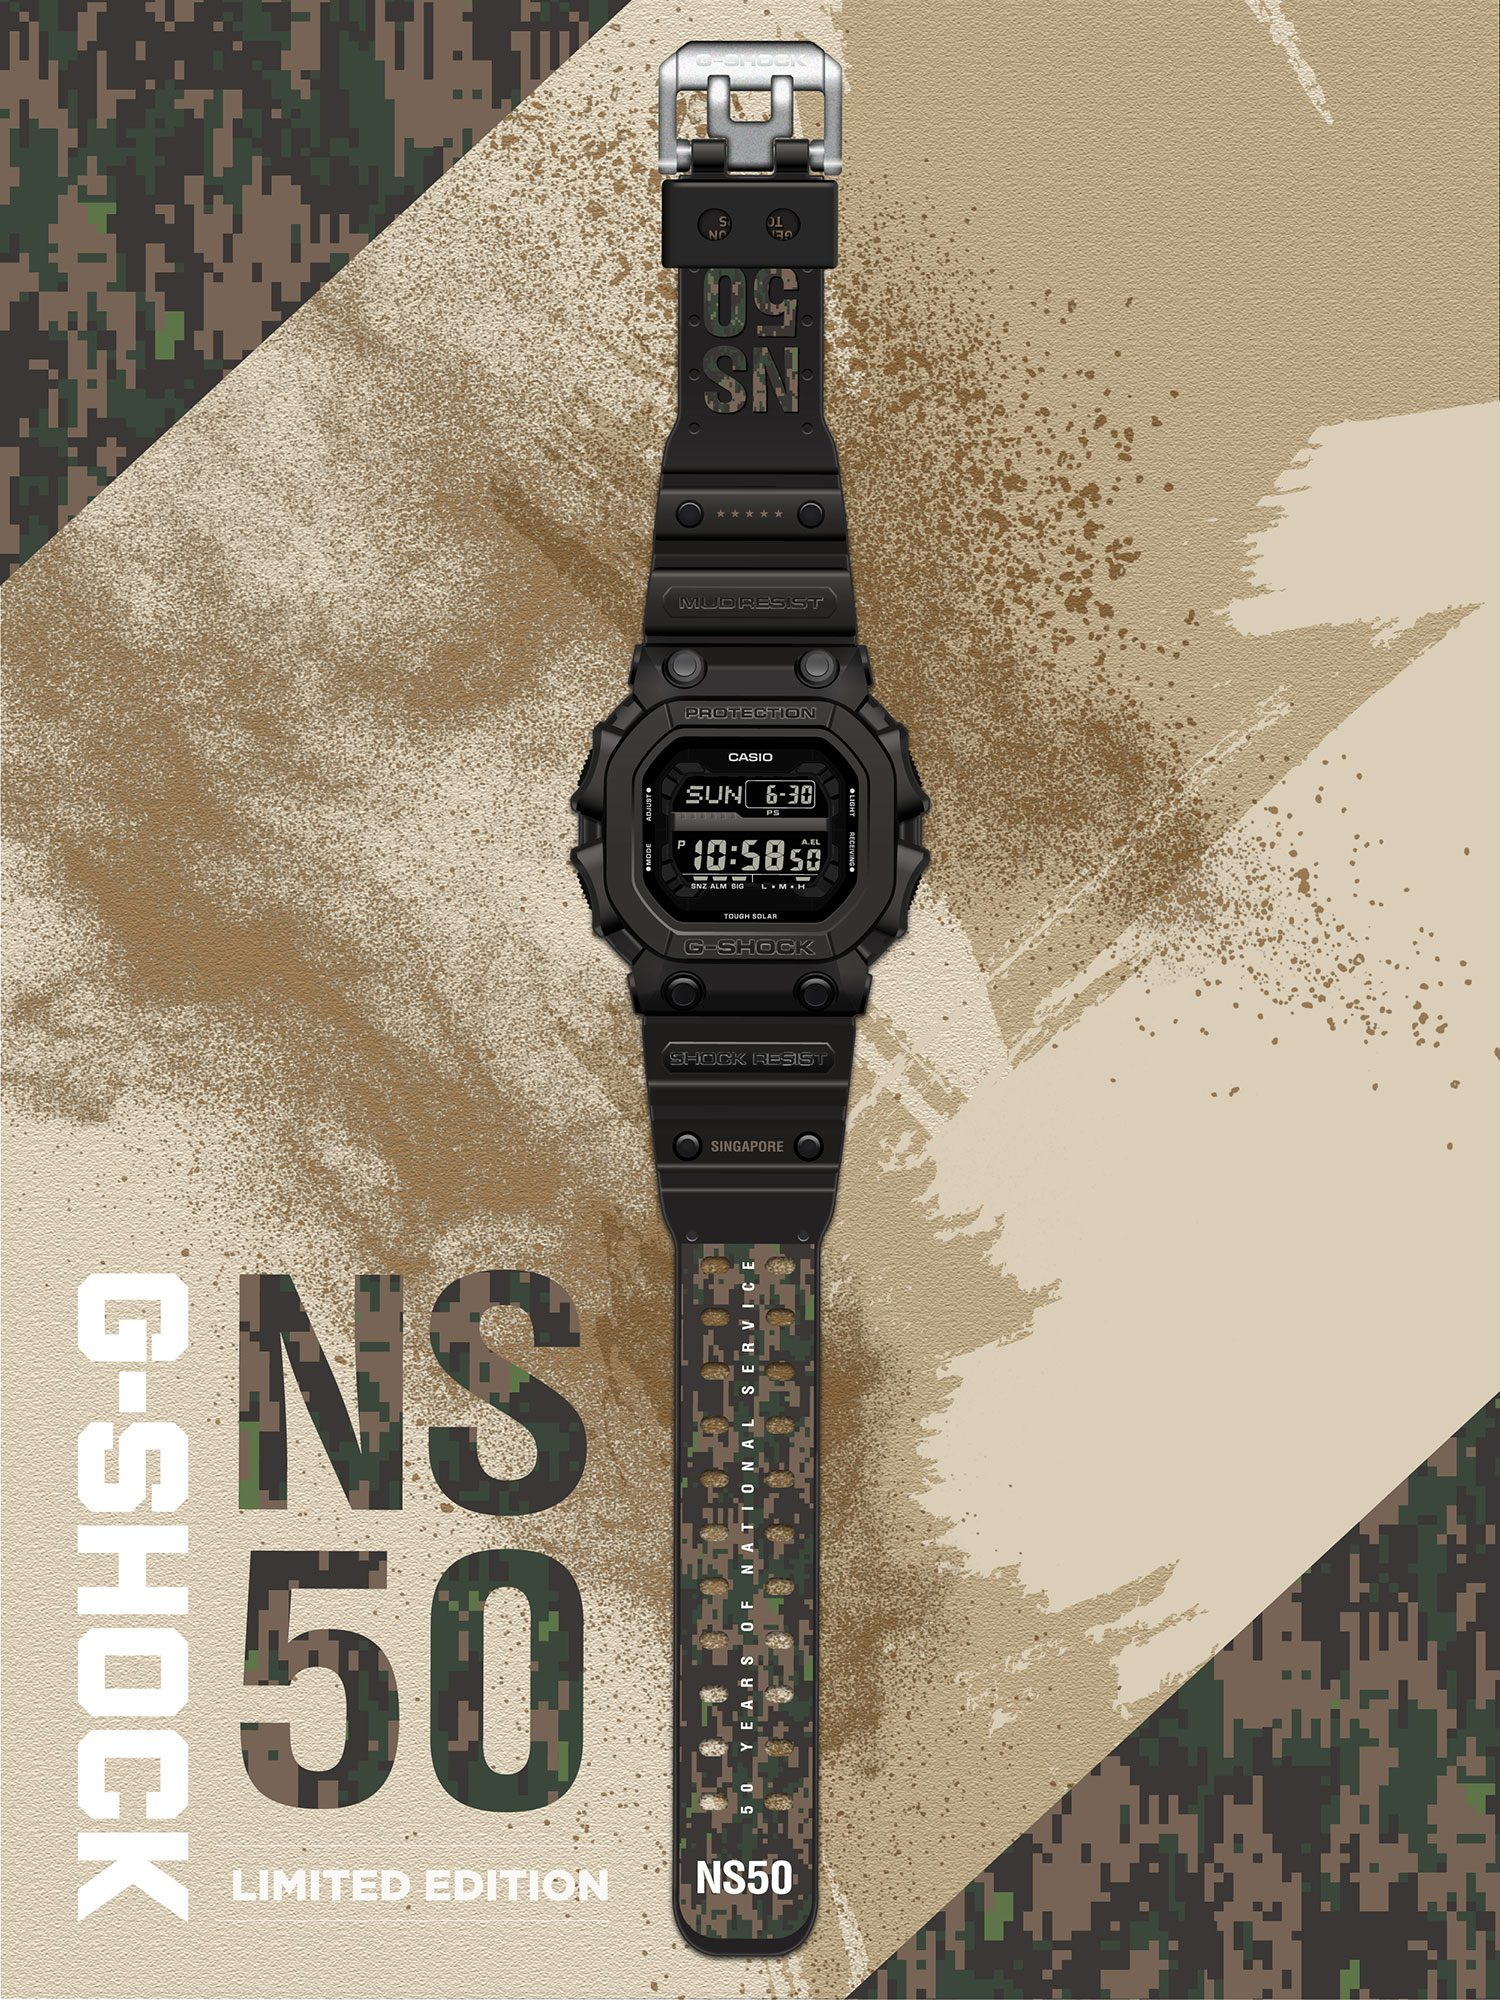 Casio G-SHOCK Releases Limited Edition NS50 Watch